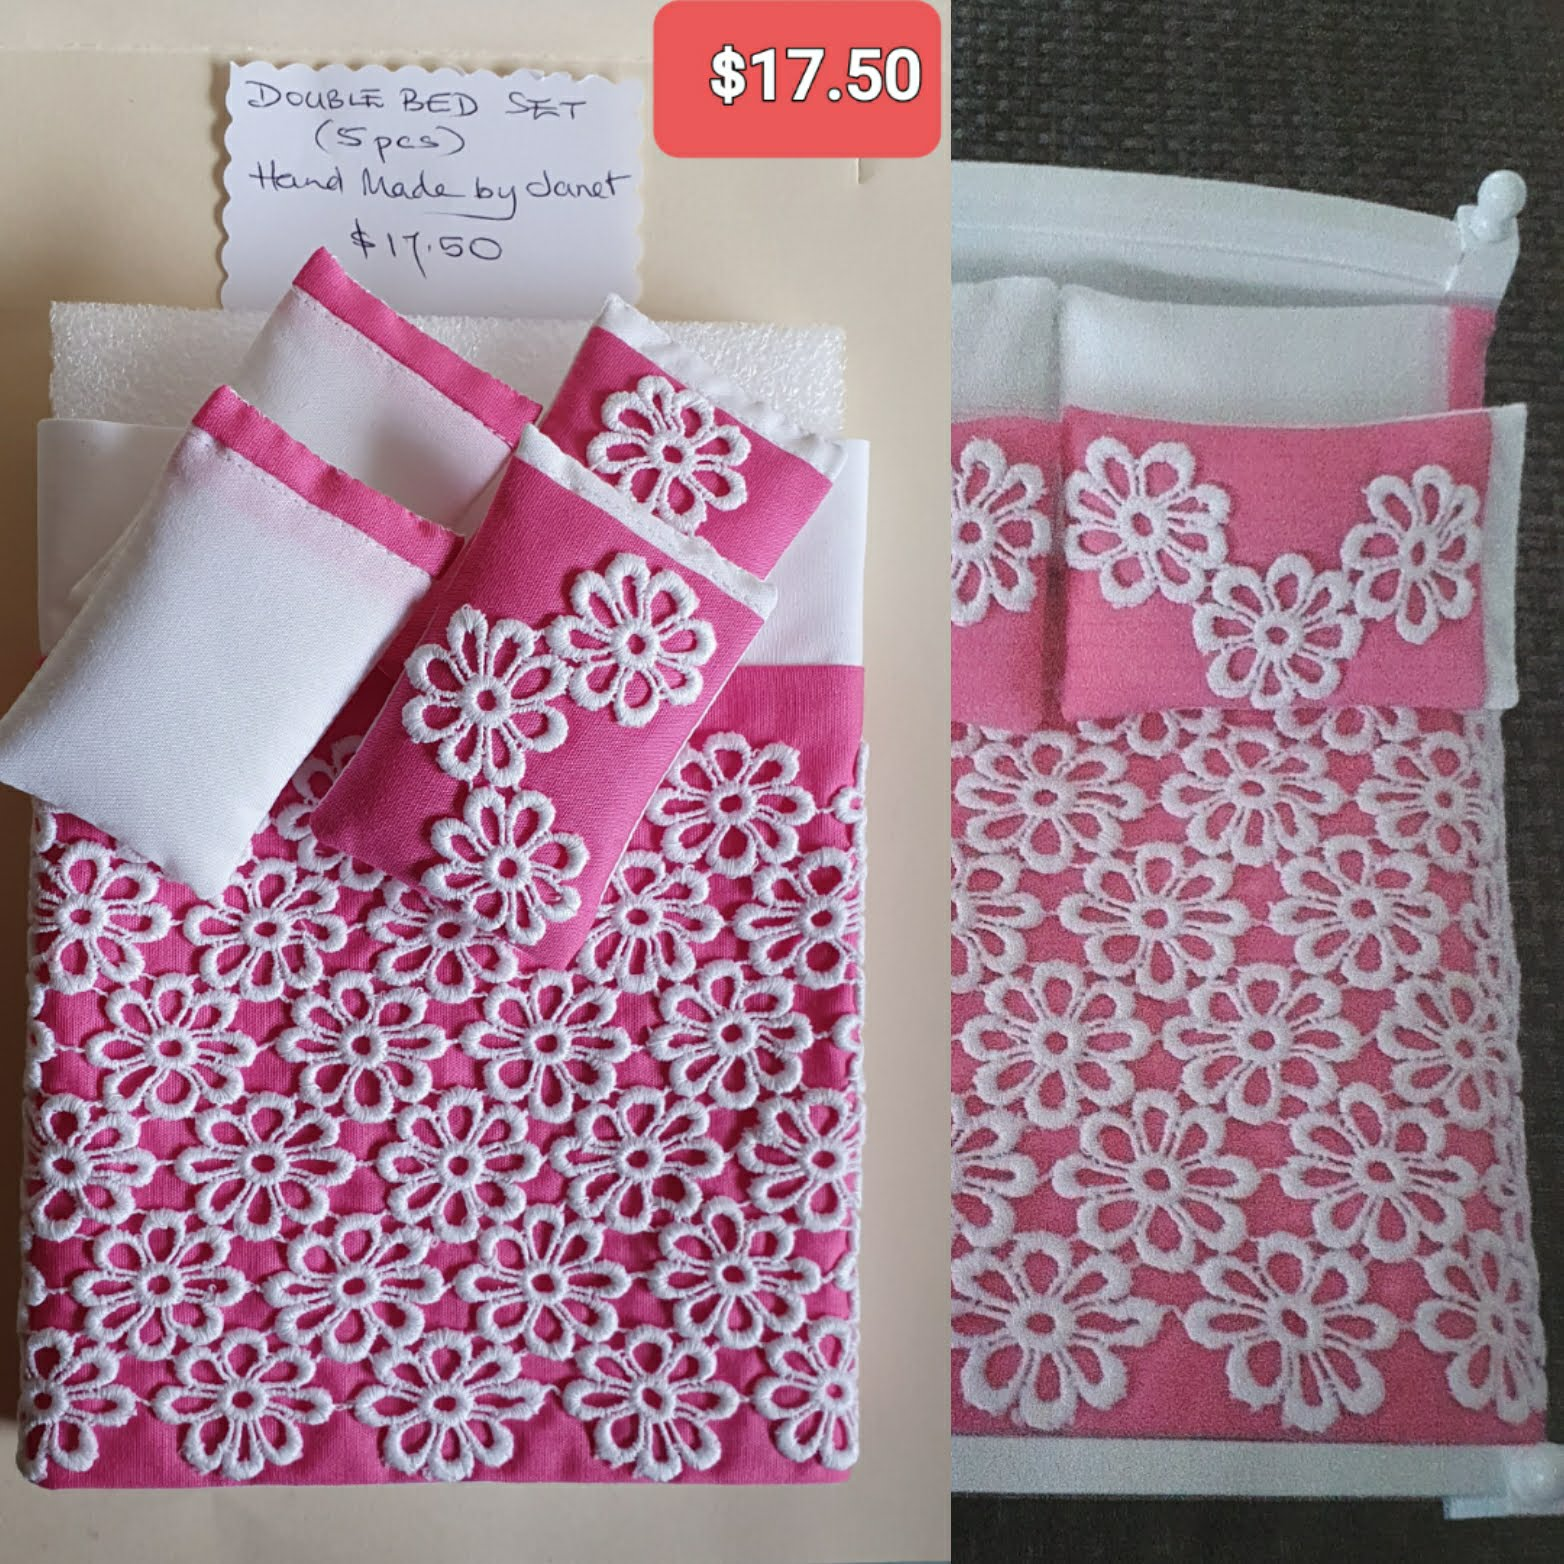 D/bd Set, 5pc, Pink/lace $17.50